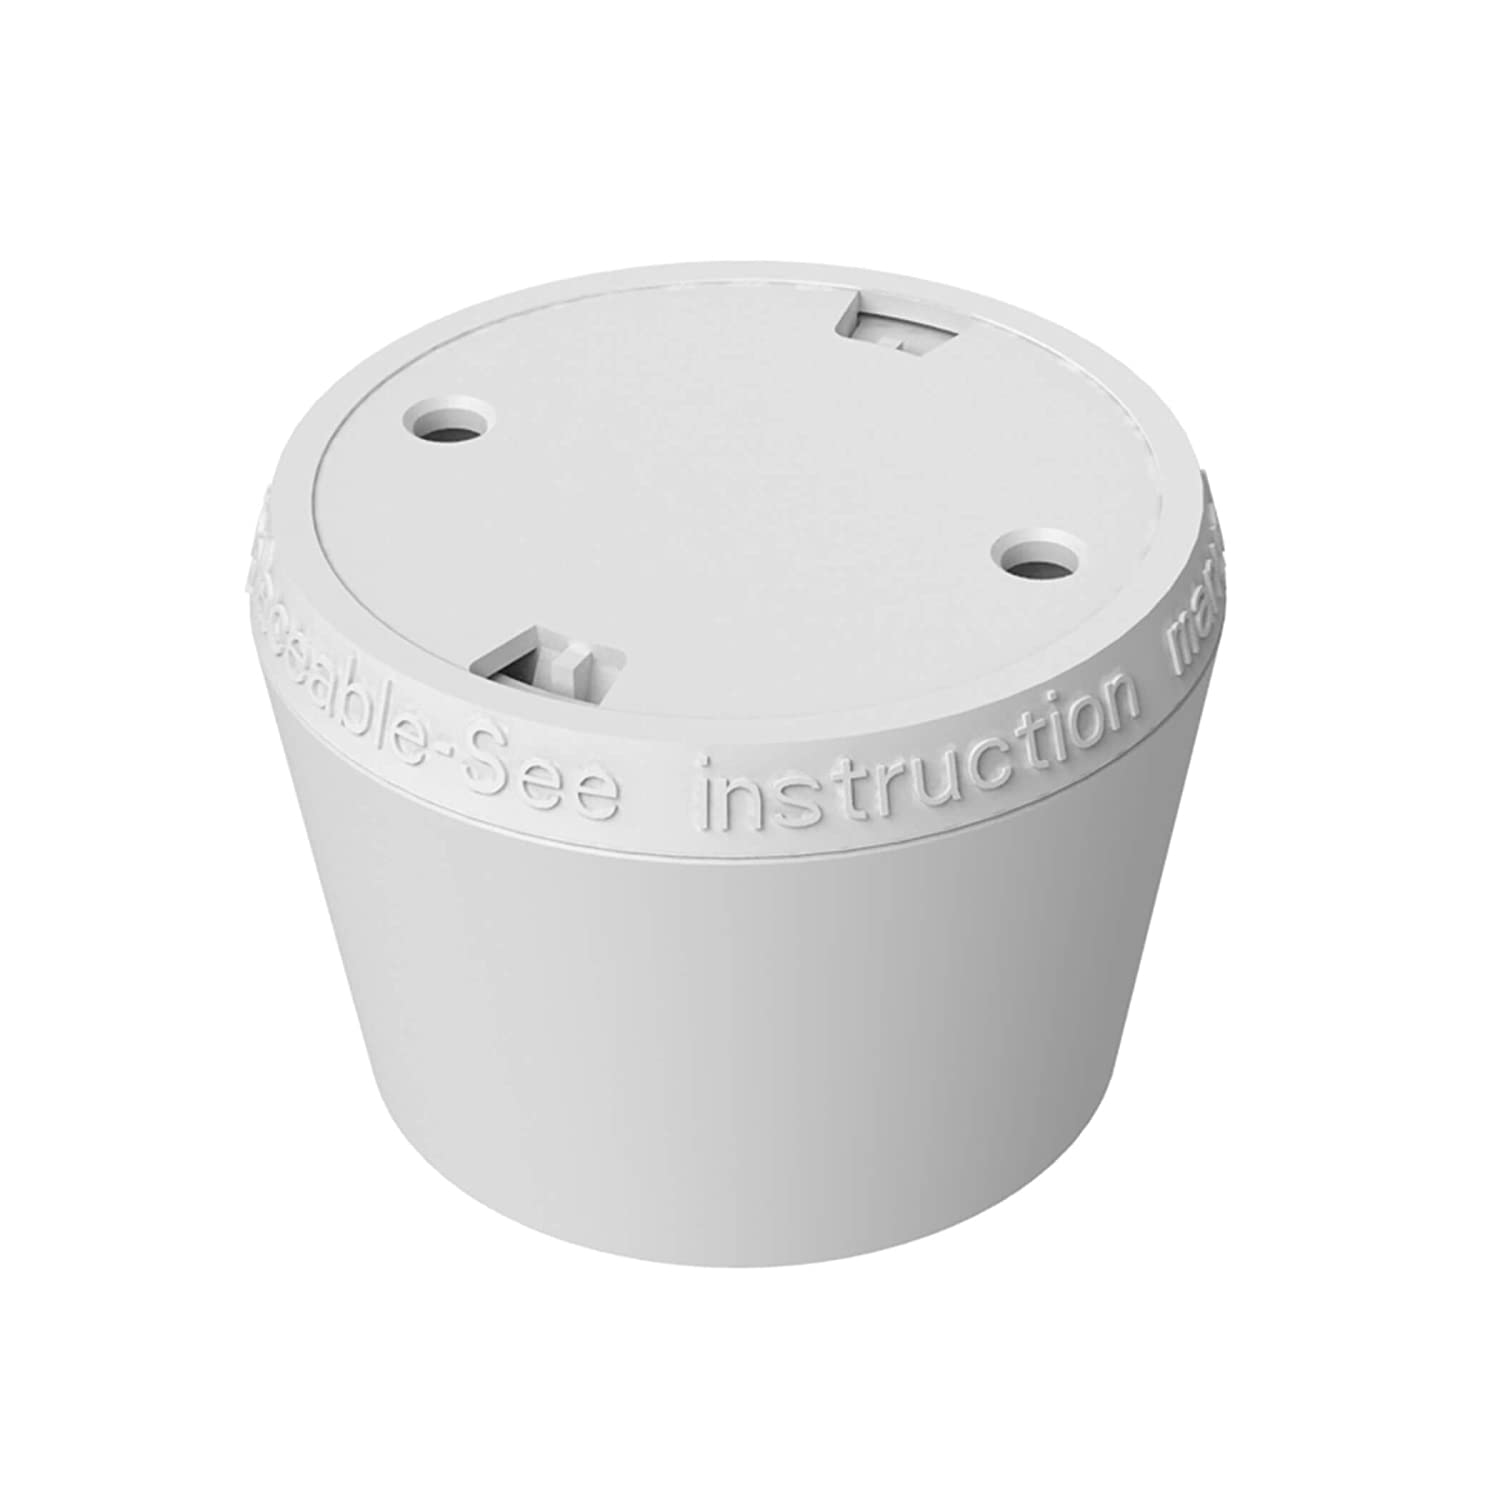 Heat Detector GS403 Mini Heat Detector for Kitchen 3V DC Lithium built-in Battery Battery Operated /Ø50x43,5mm SEBSON Heat Alarm 10 Year Battery